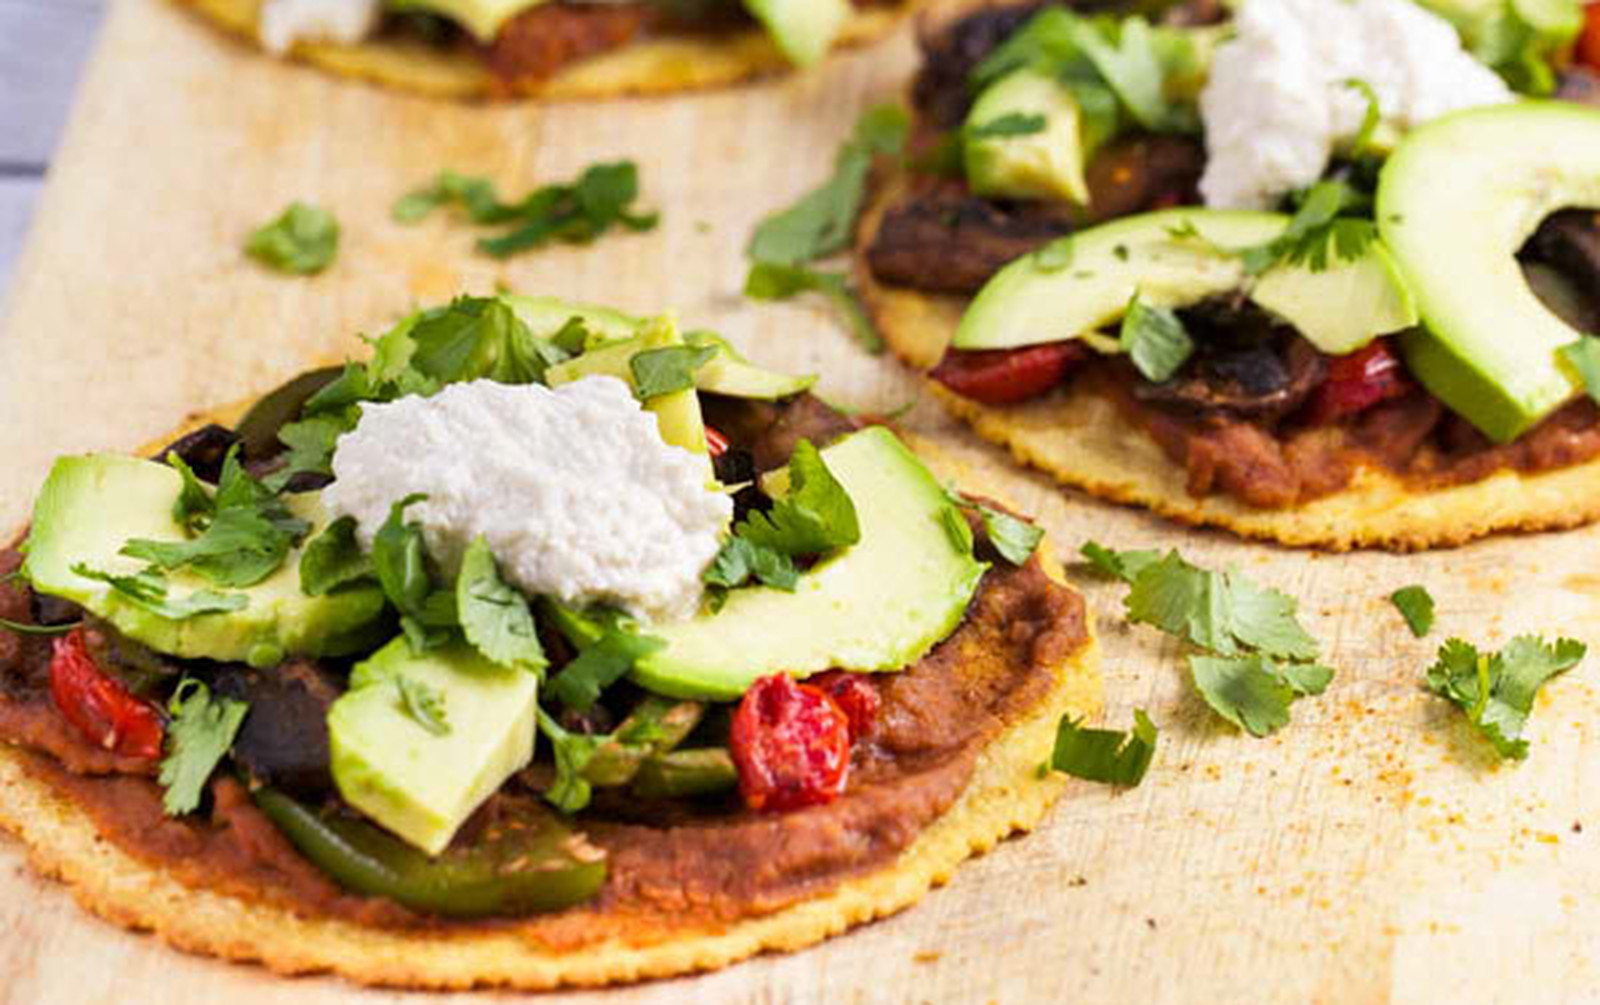 Vegan Portobello Tostadas With Chipotle Cream